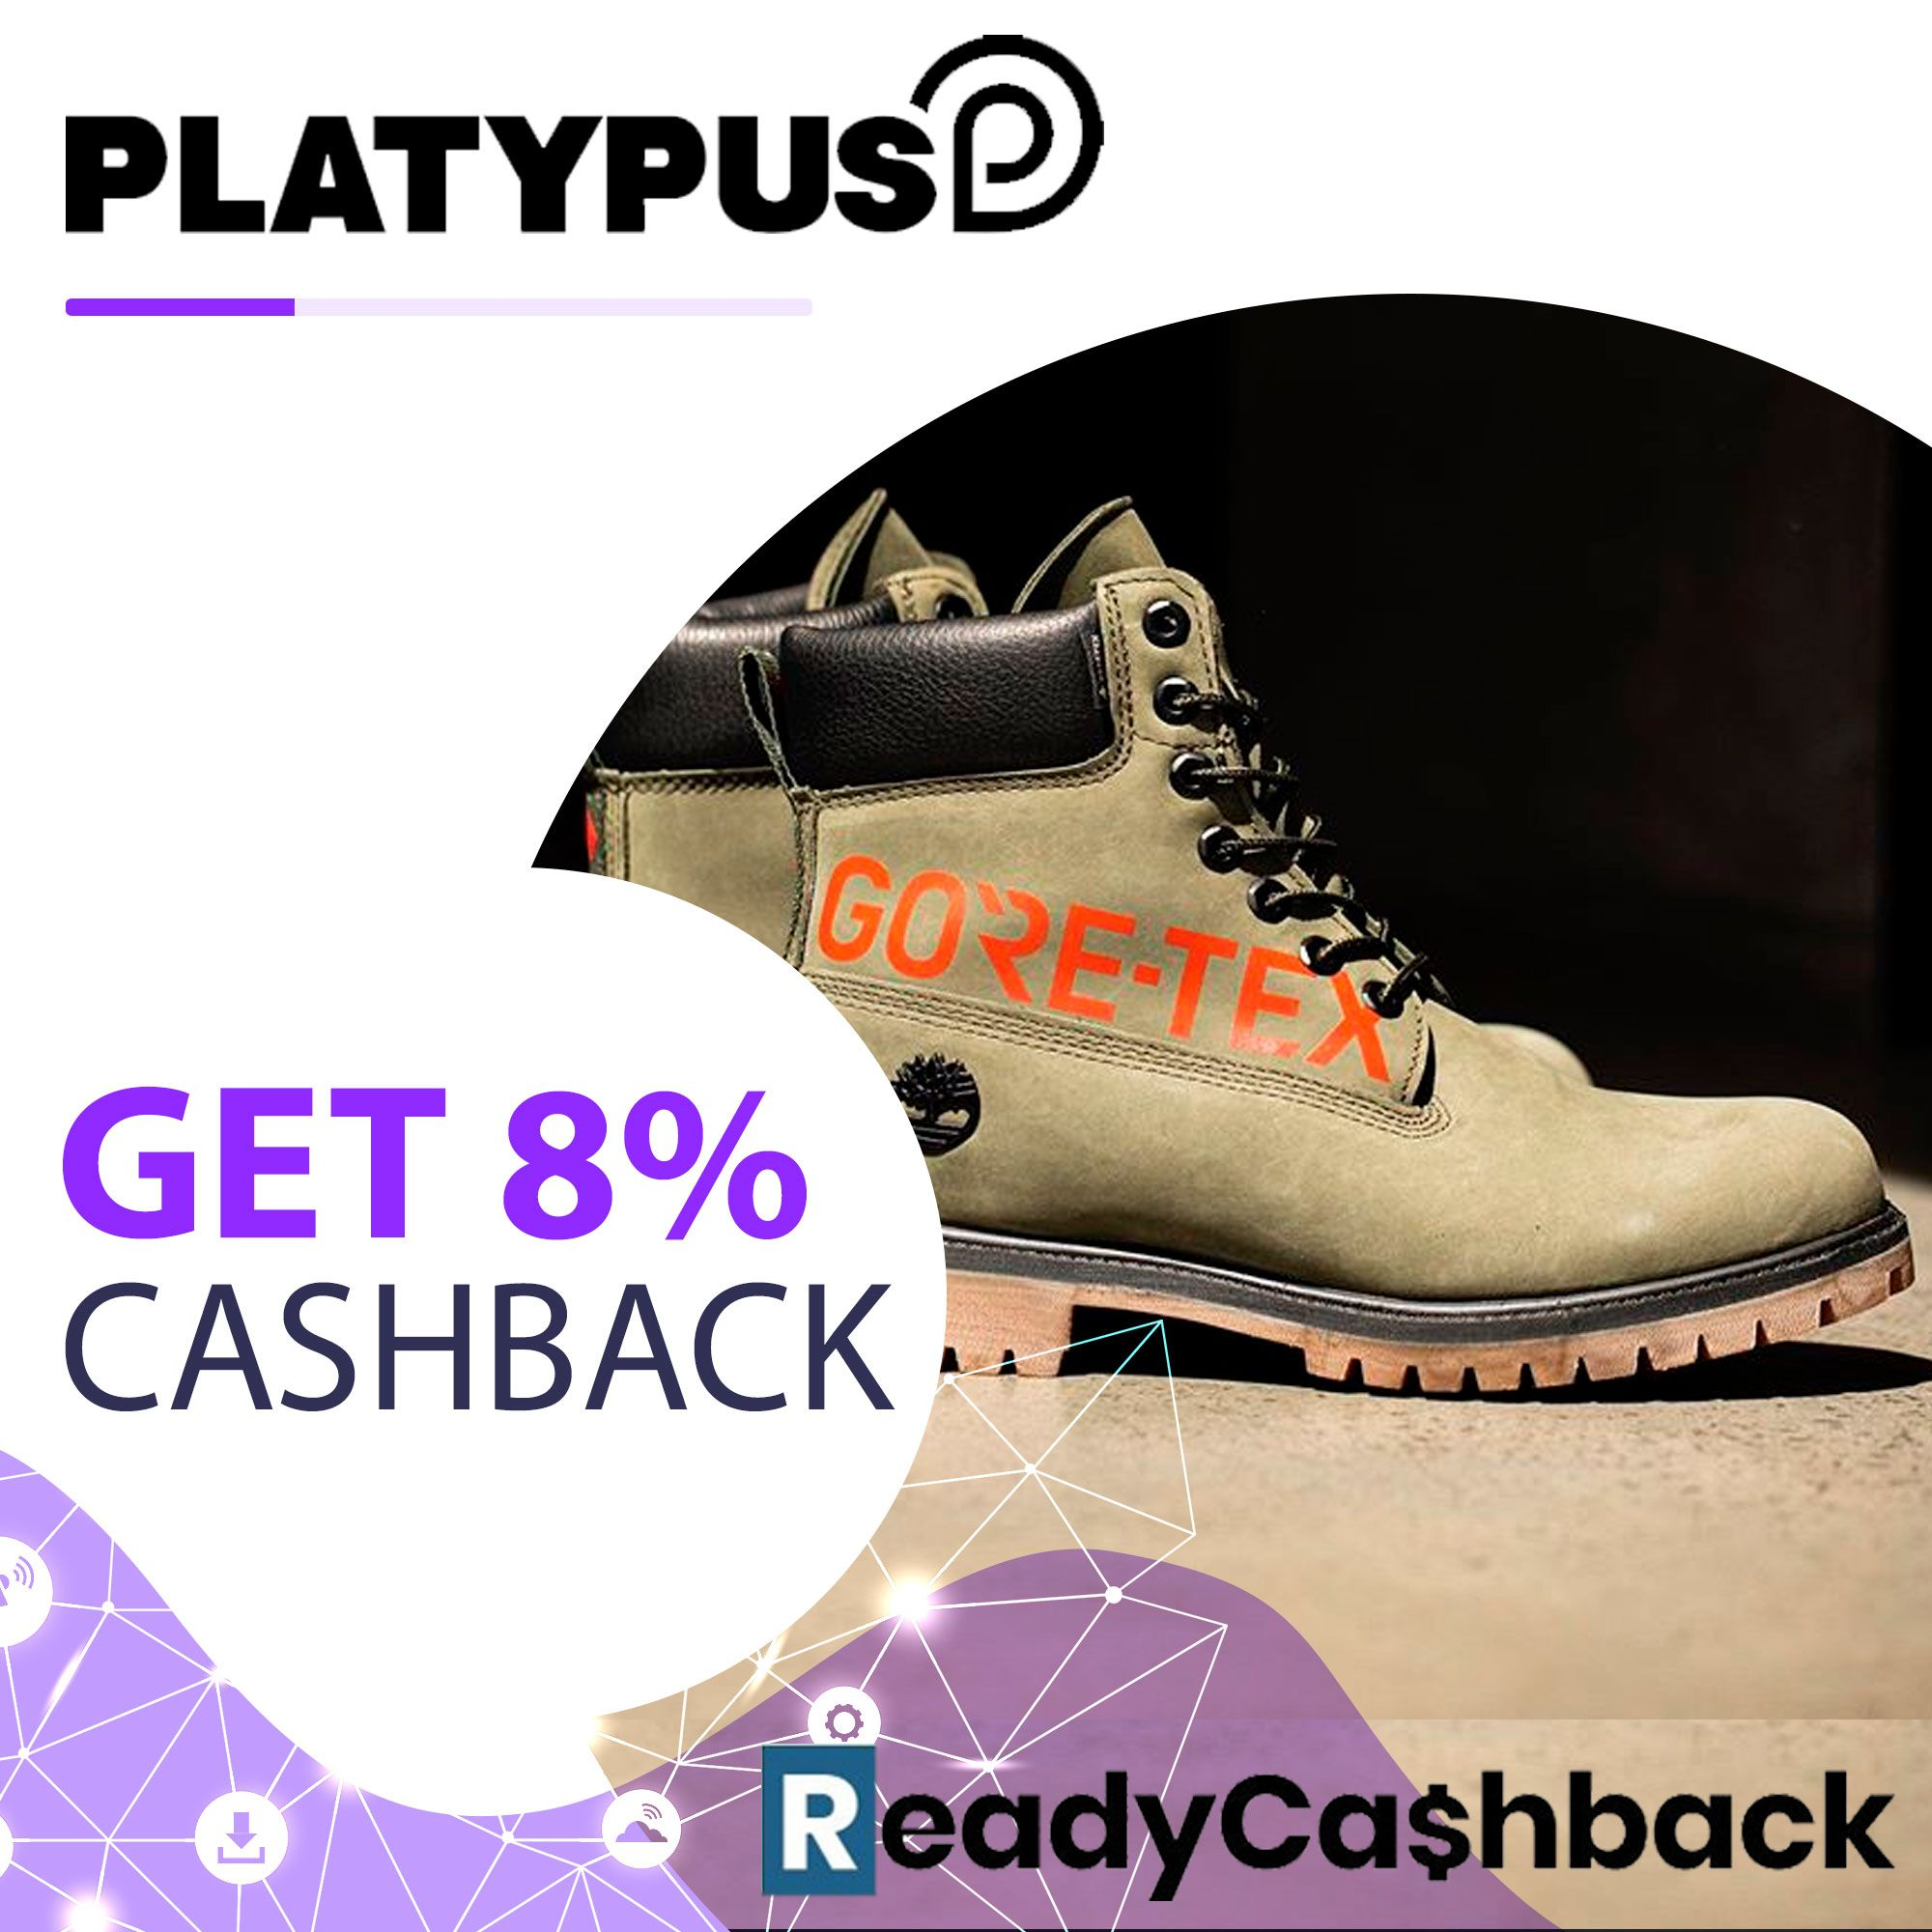 8.0% Cashback on Platypus Shoes in 2020